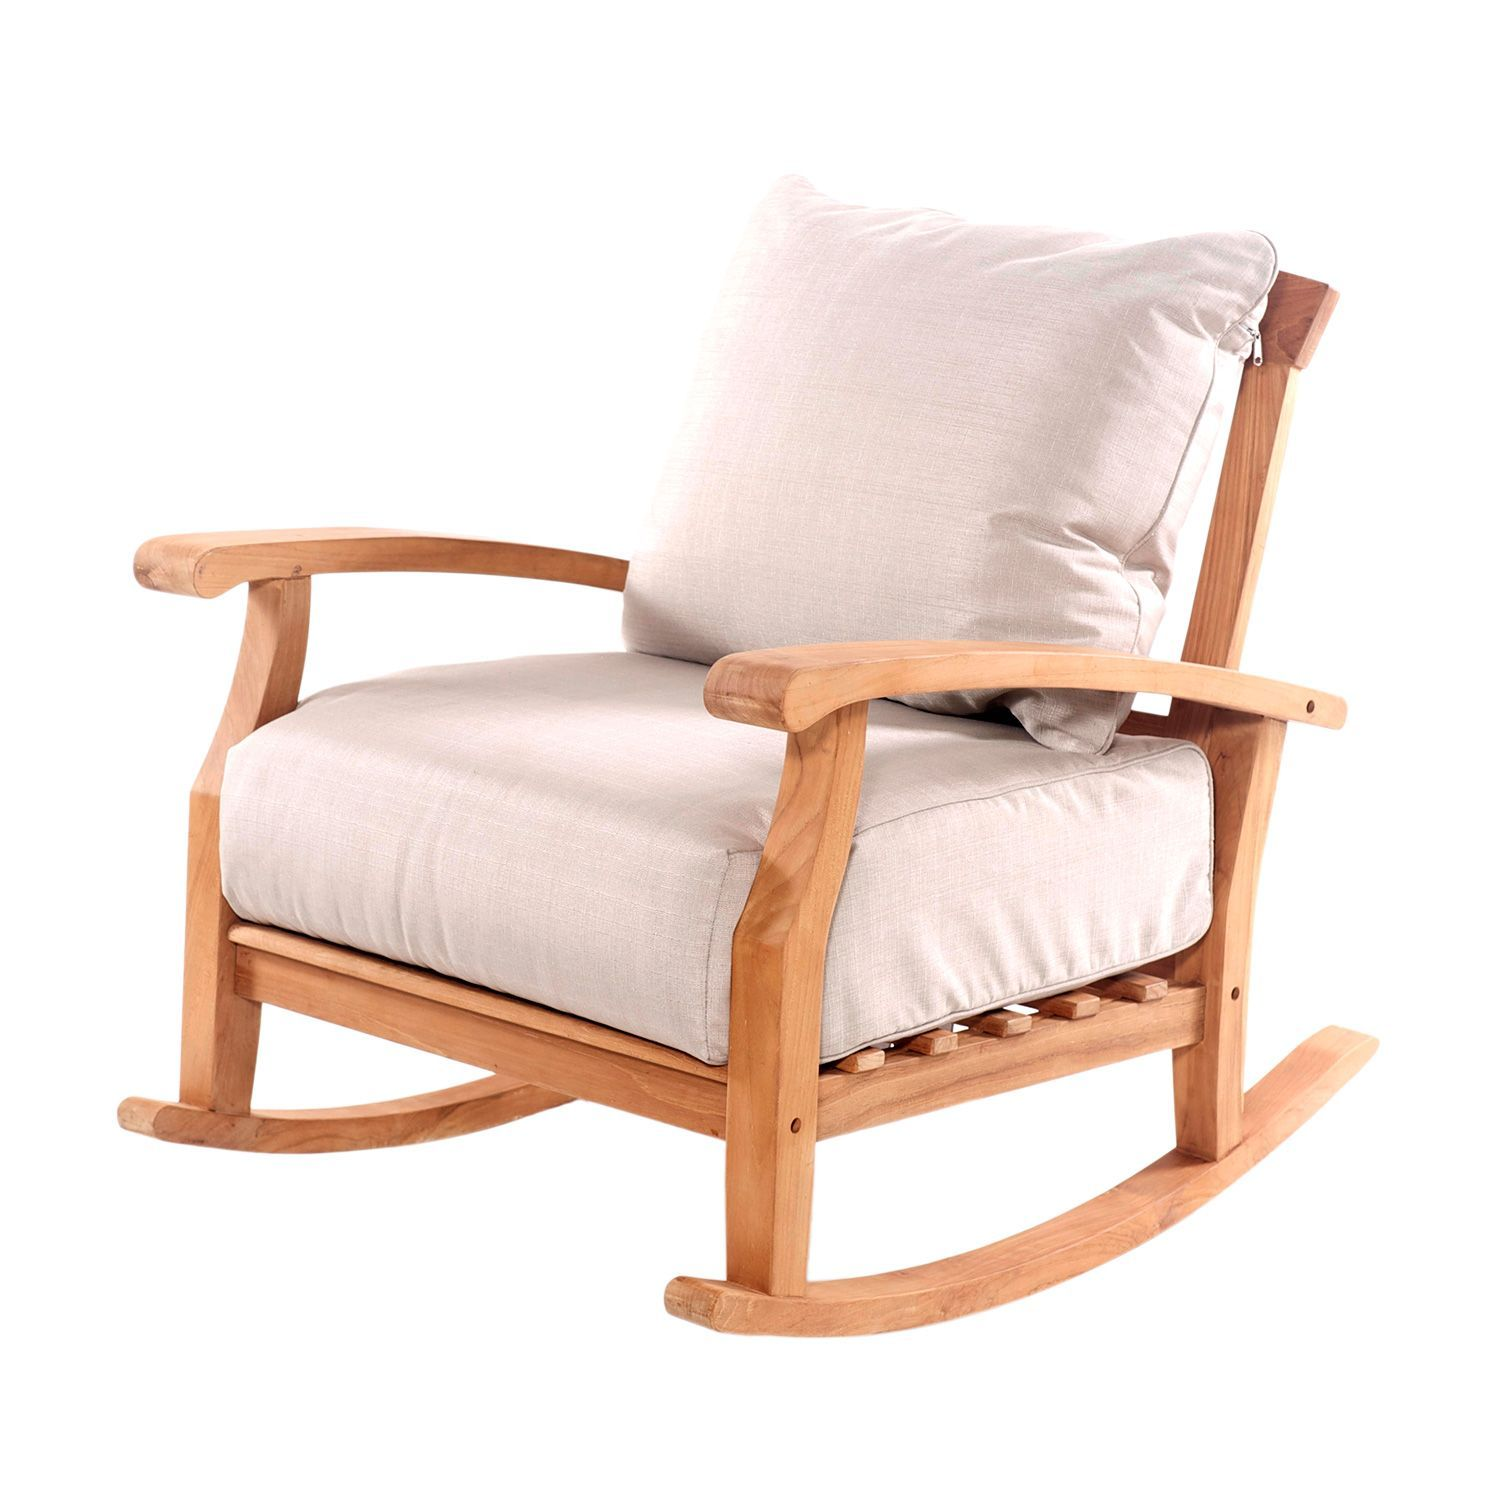 Prime Teak Deep Seating Rocker Sams Club Rocking Chair Teak Ibusinesslaw Wood Chair Design Ideas Ibusinesslaworg